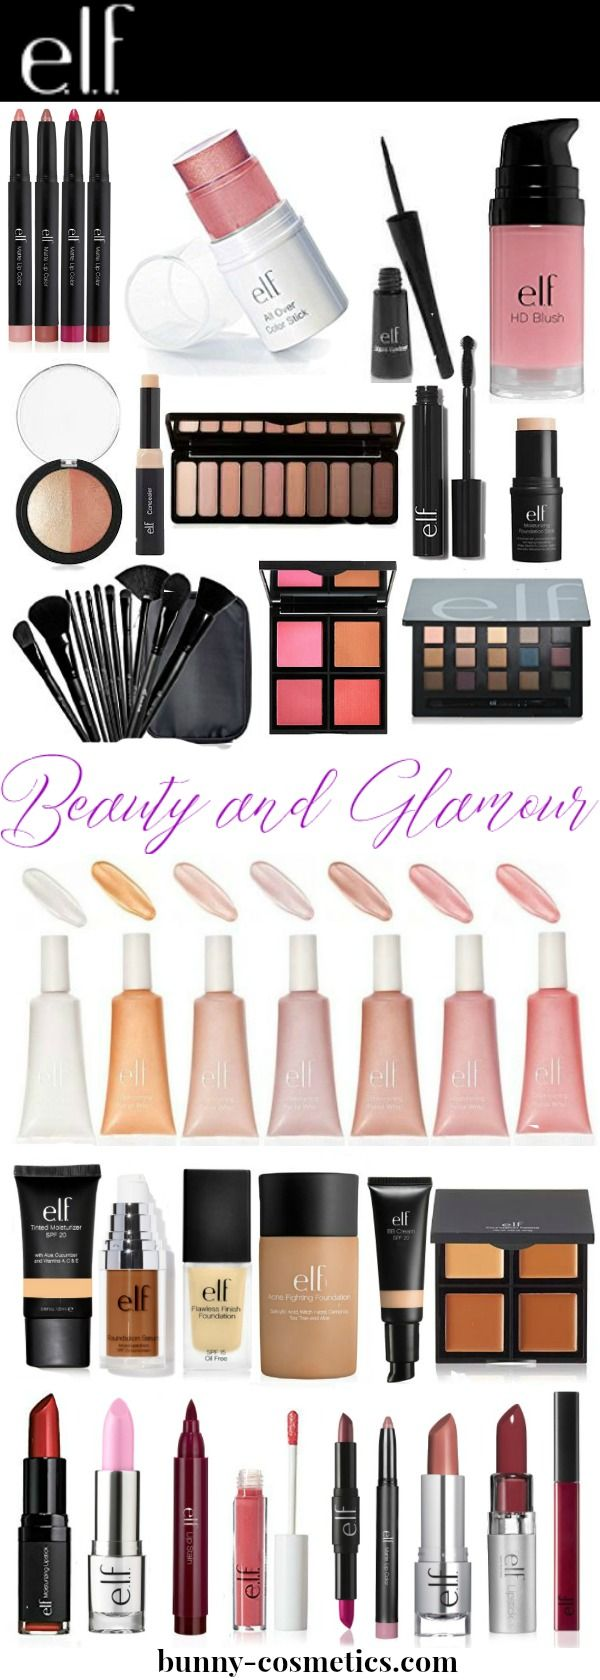 Elf Cosmetics is the best high quality drugstore brand